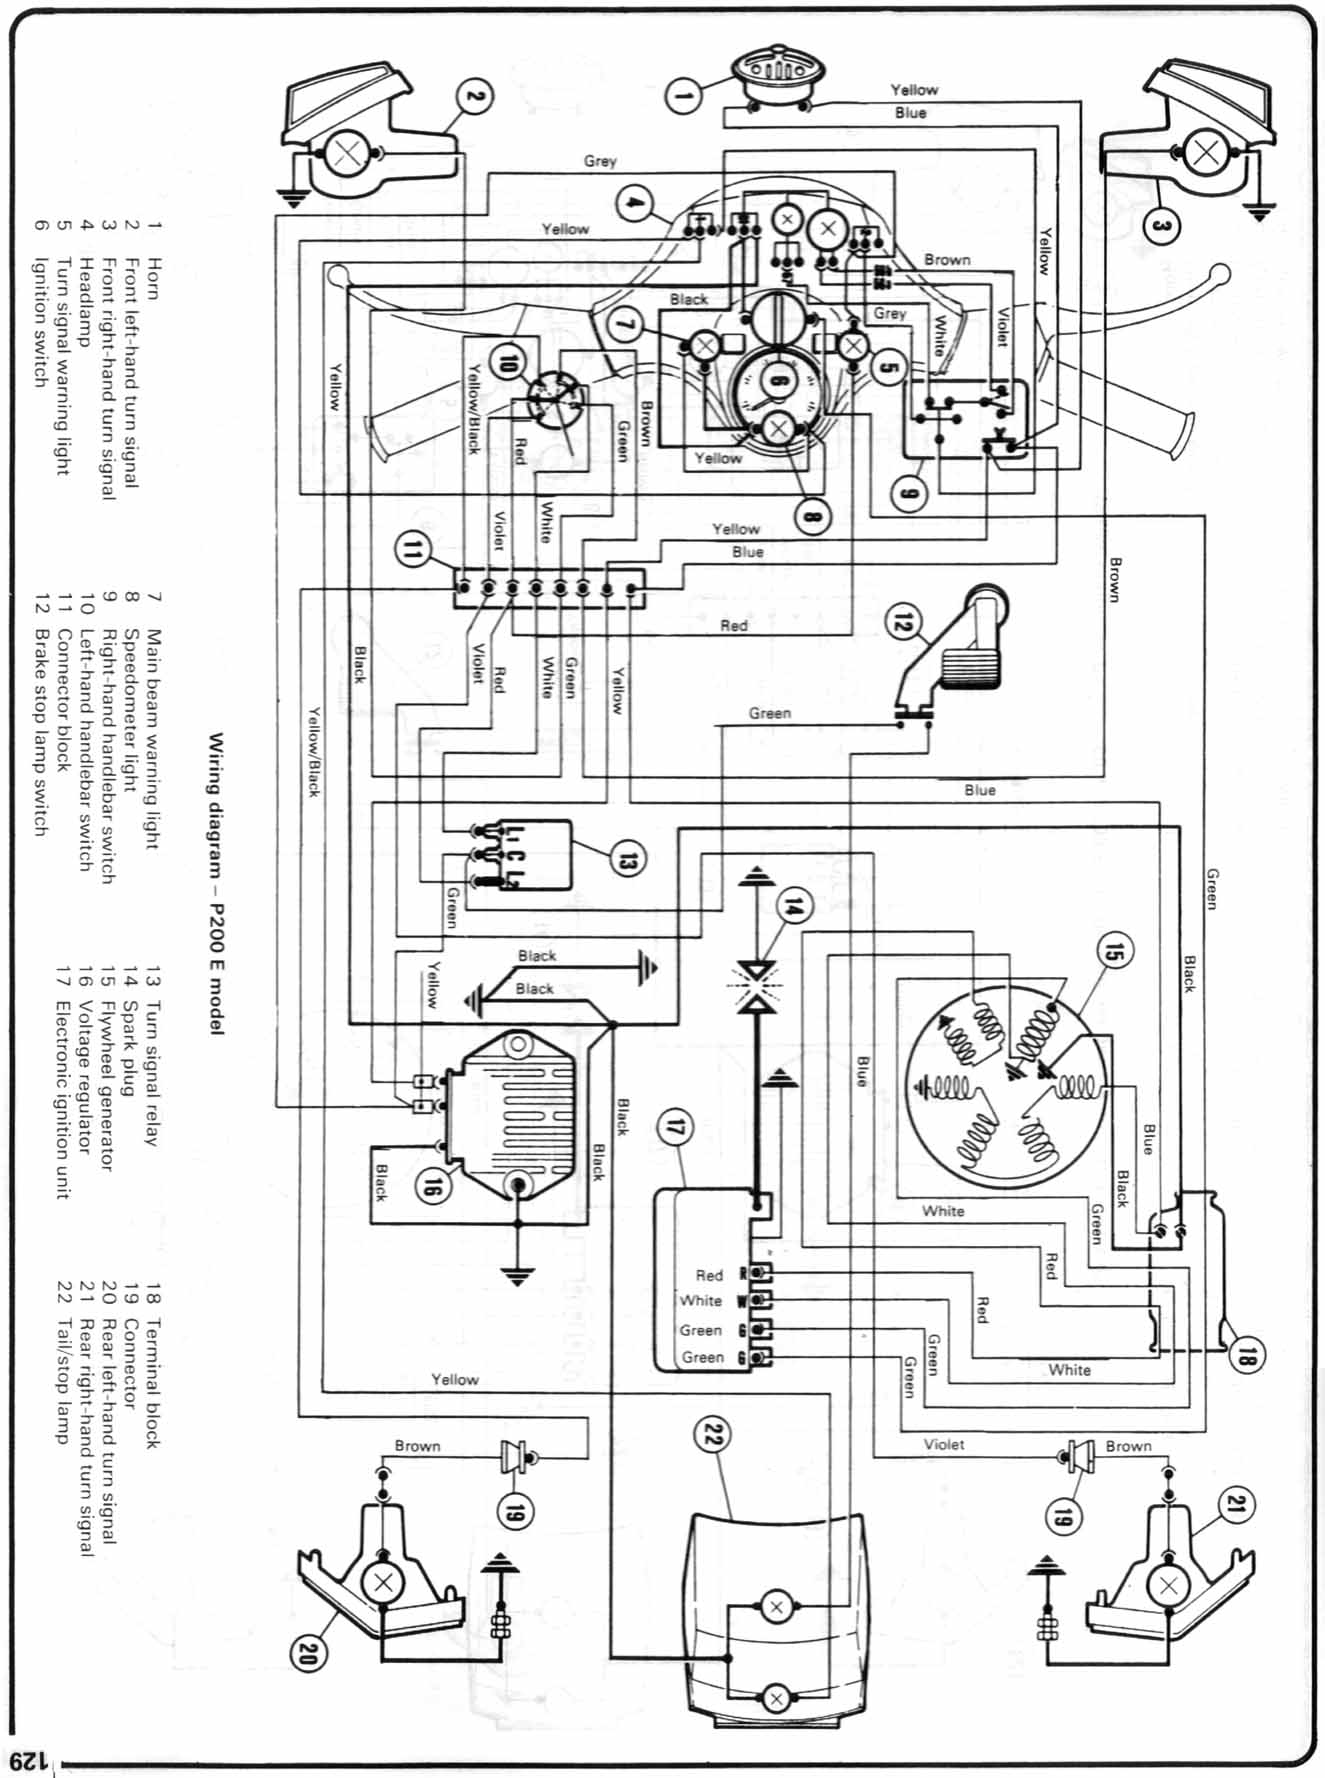 p200diag1 modern vespa seeking advice on an overly ambitious electrical vespa p125x wiring diagram at aneh.co